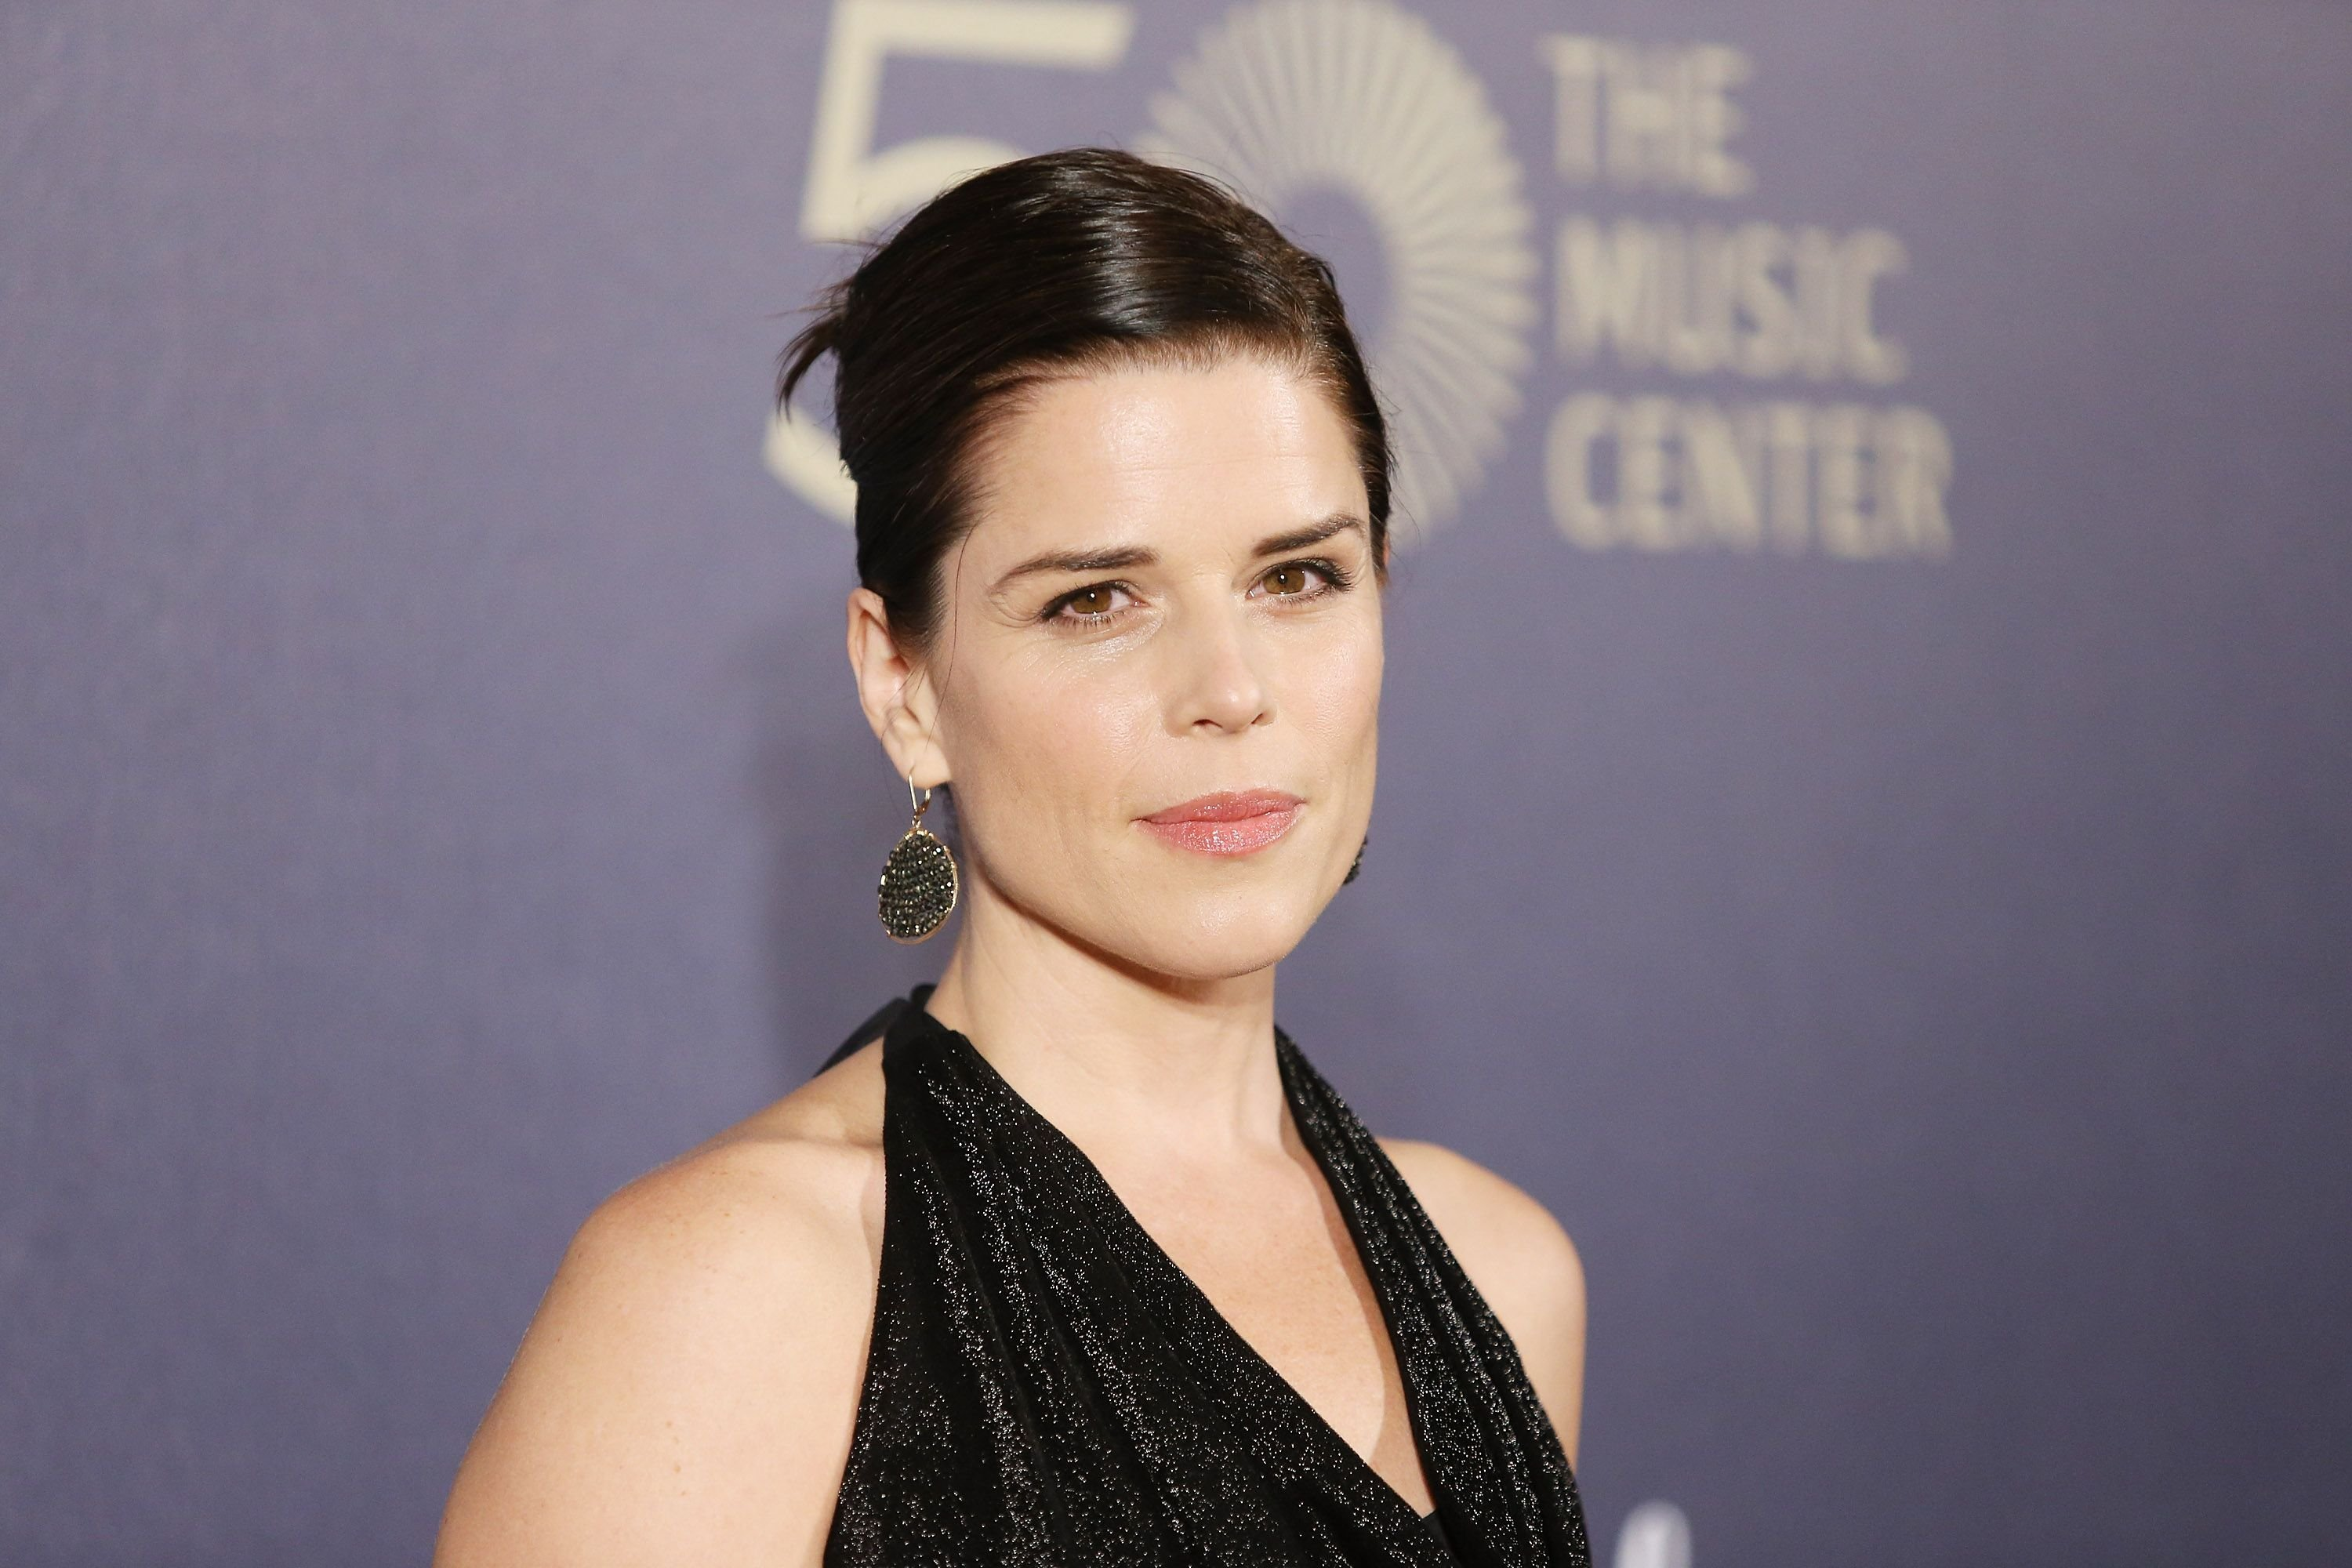 Neve Campbell at The Music Center's 50th Anniversary Spectacular in 2014 in Los Angeles, California   Source: Getty Images